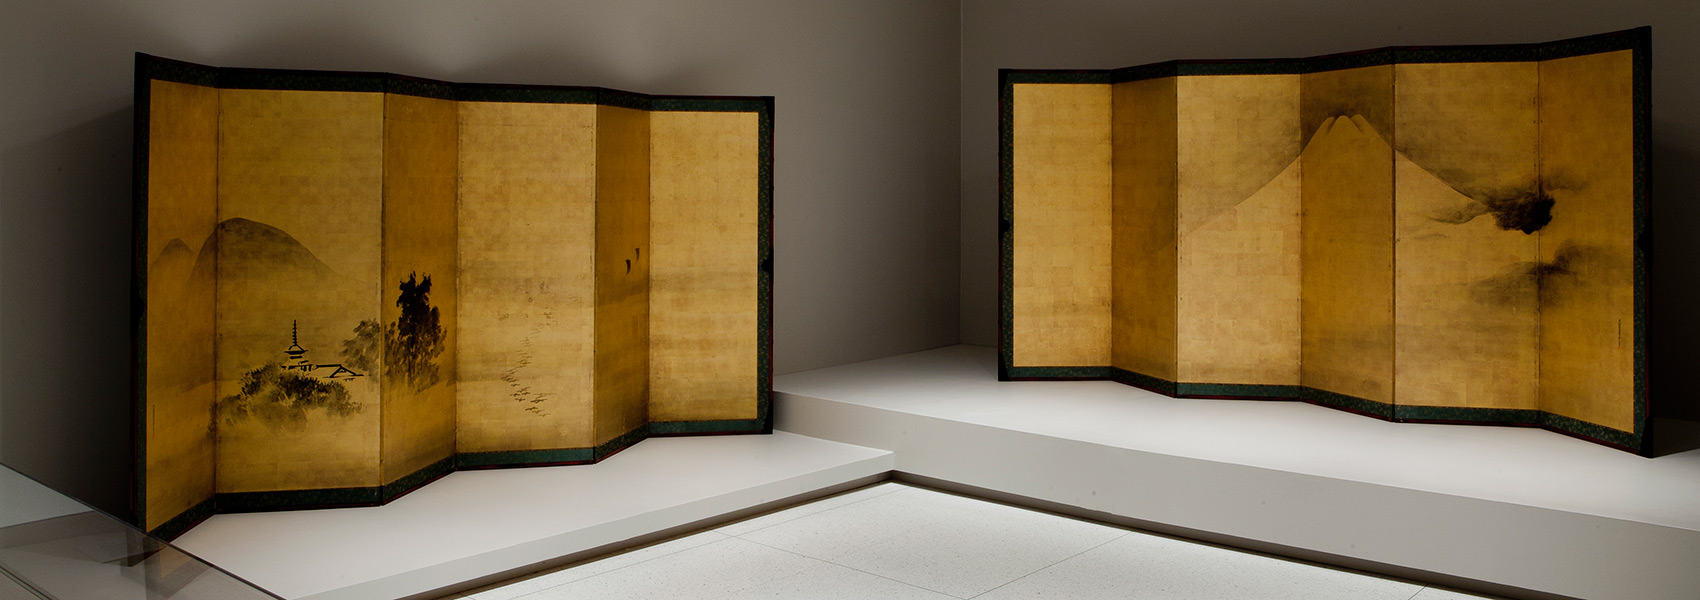 Installation view of Objects and Voices showing two screen paintings attributed to Tosa Mitsunari